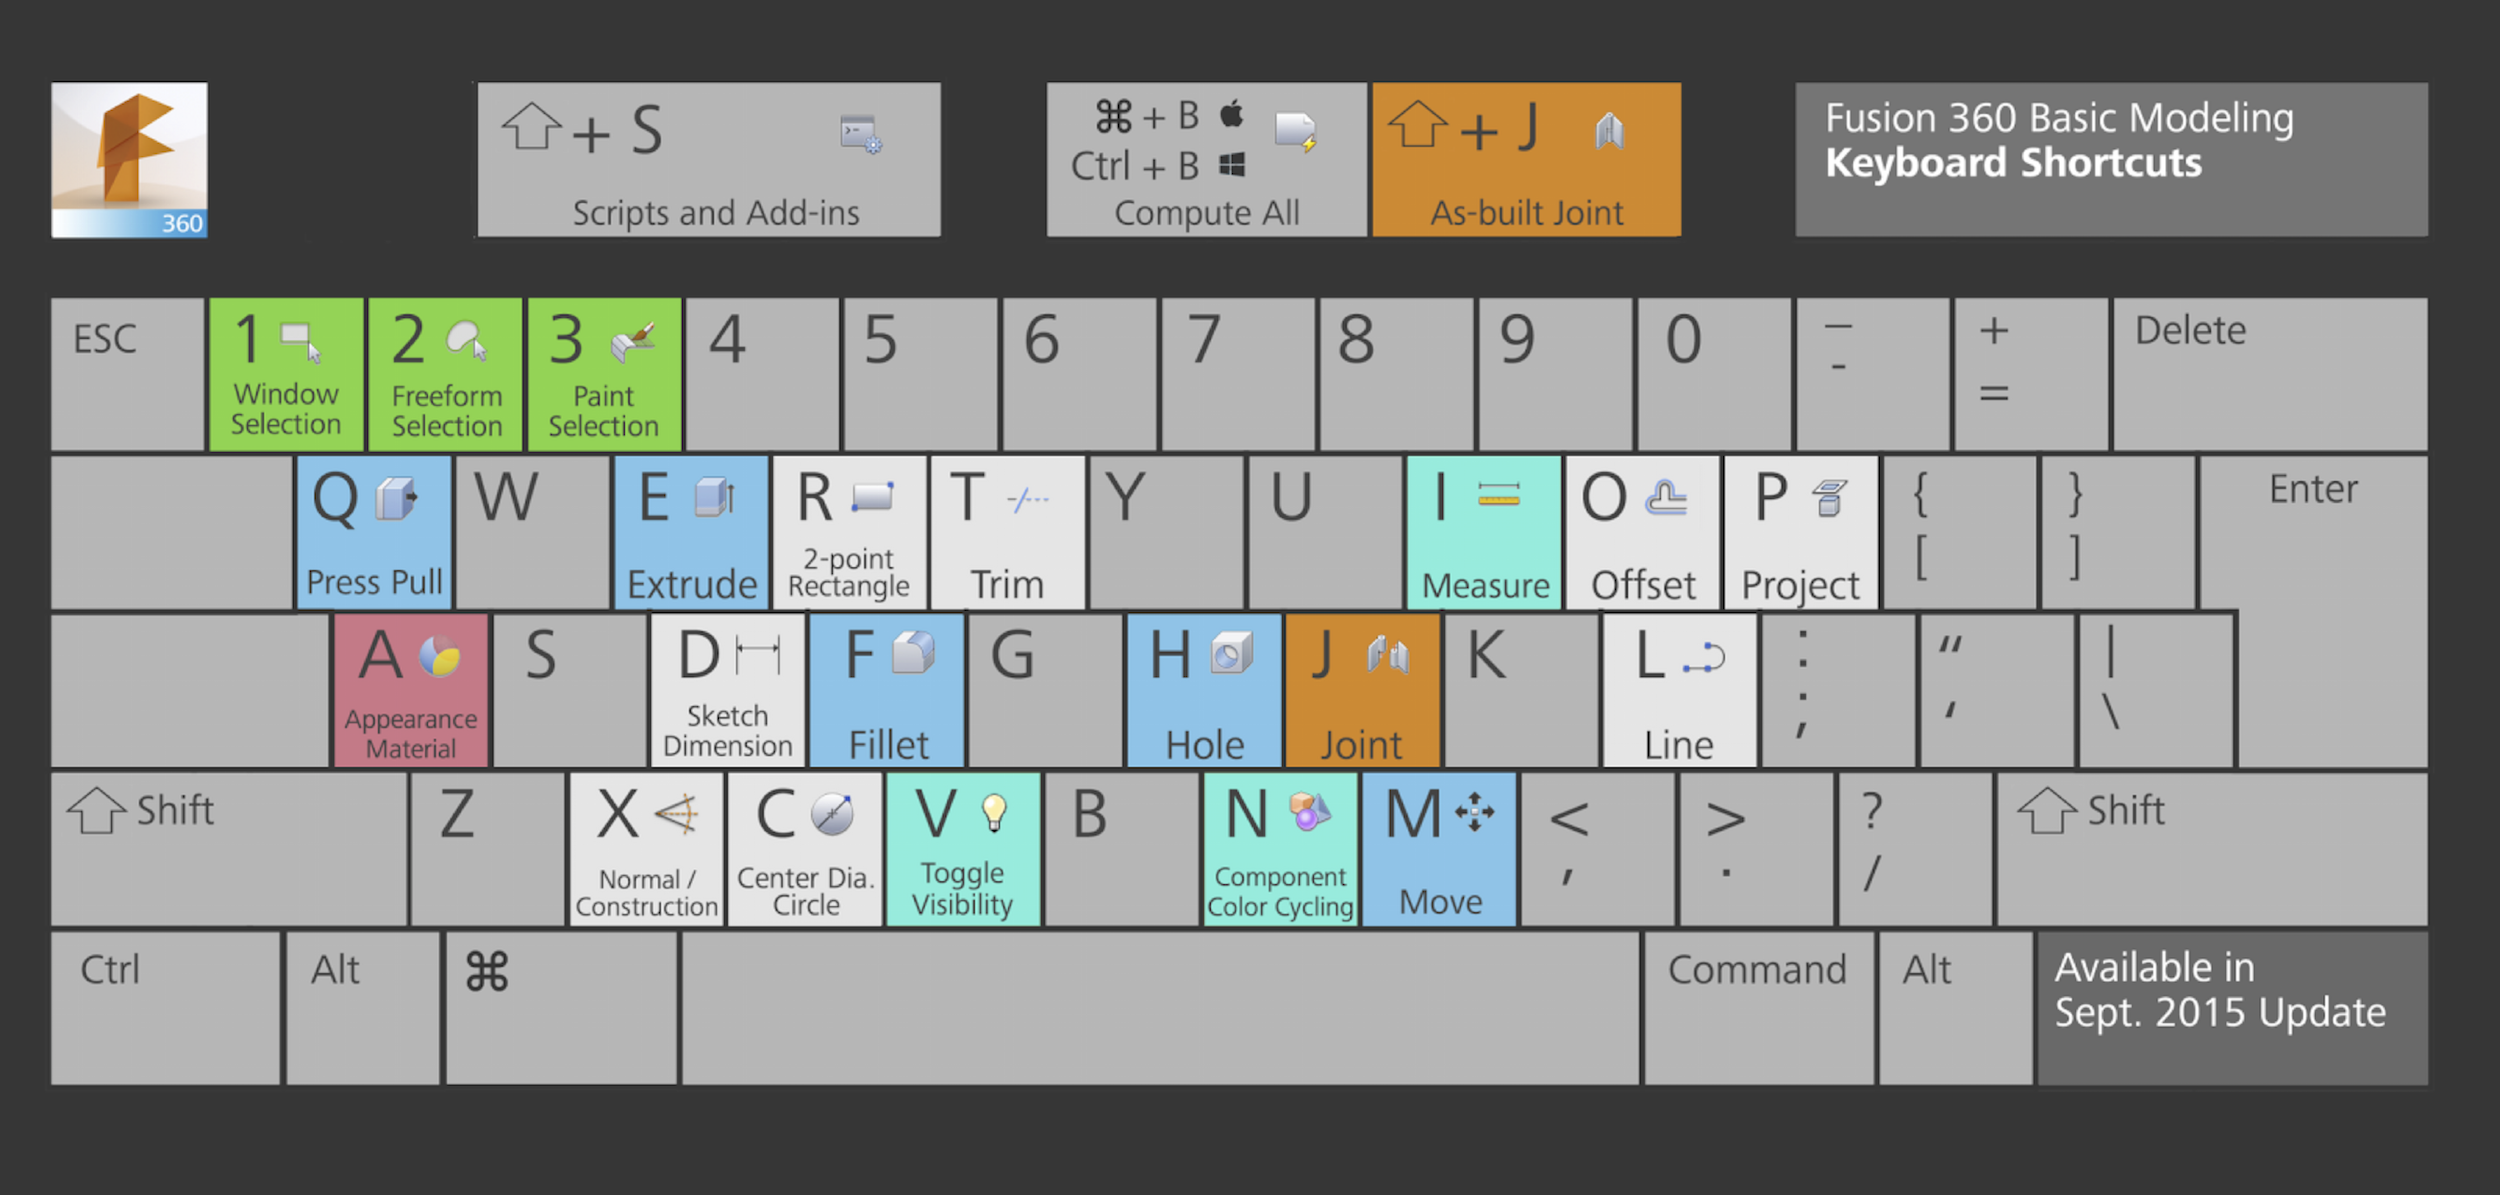 Keyboard shortcuts | Fusion 360 | Autodesk Knowledge Network | Autodesk | Pinterest | Knowledge ...